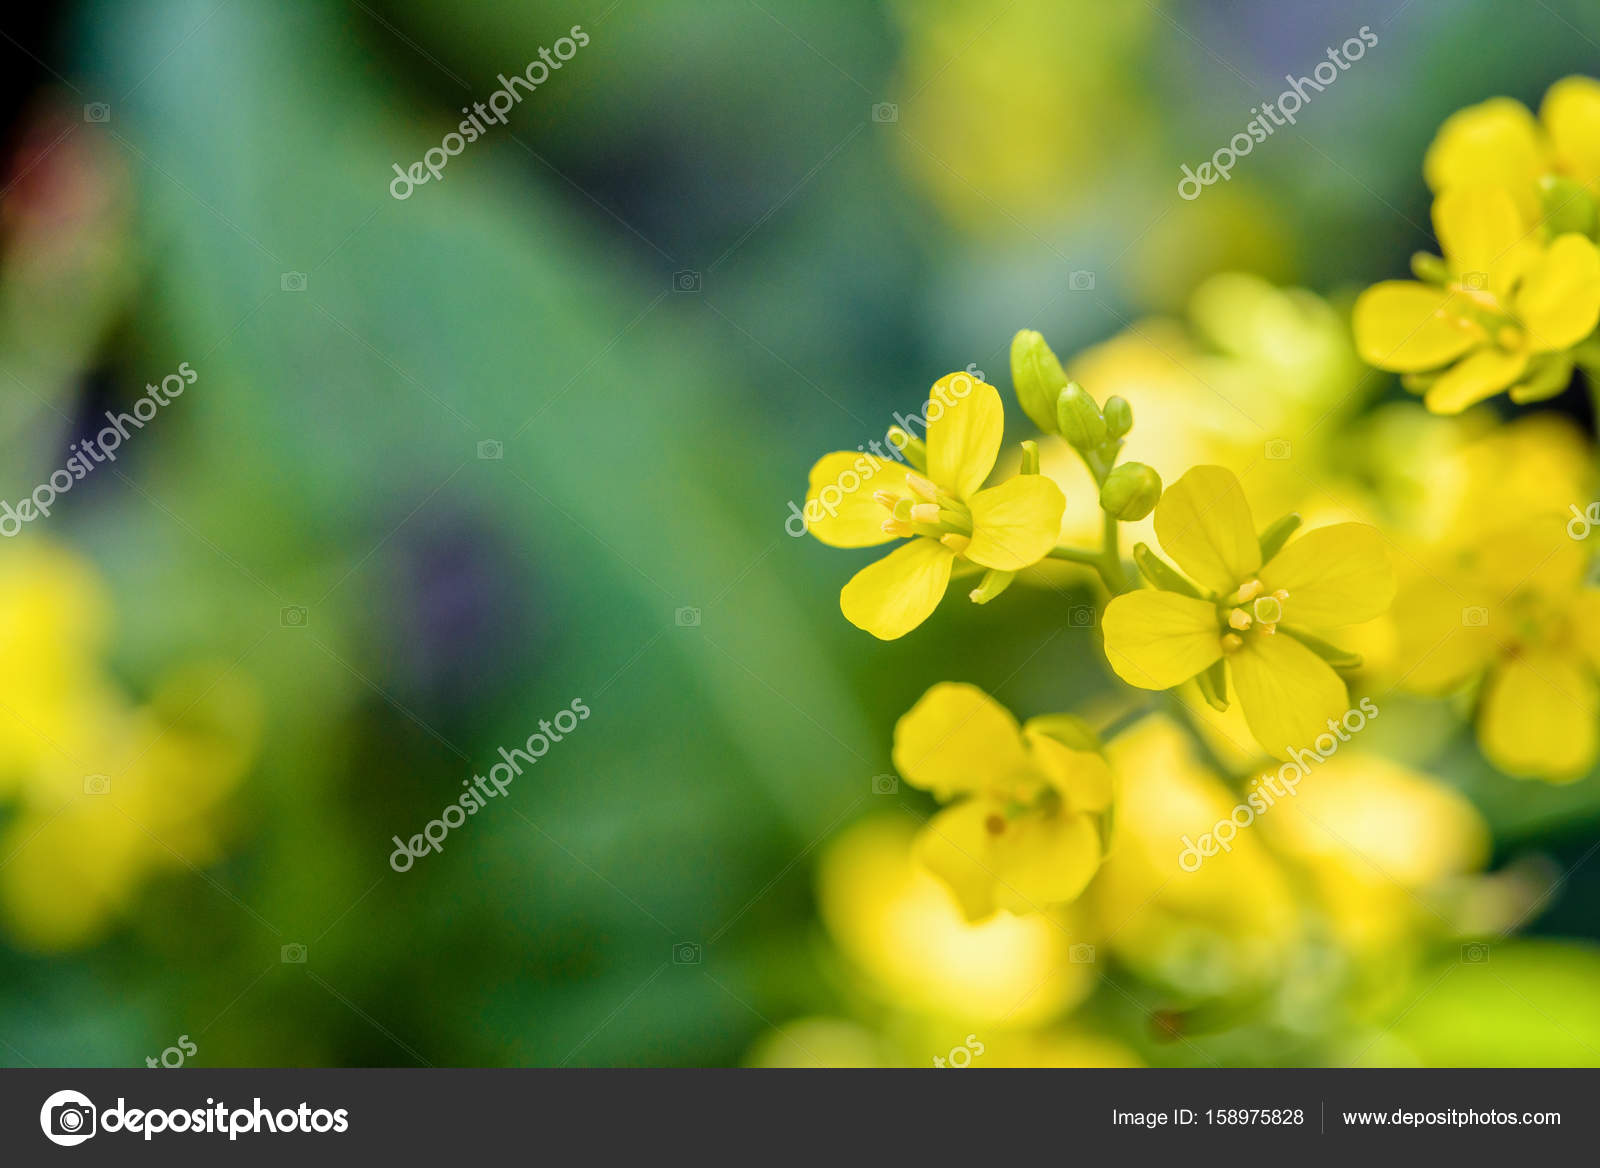 Yellow flower of wild mustard stock photo yongkiet 158975828 closeup beautiful small yellow flowers of sinapis arvensis wild mustard brassica or charlock on green blur background photo by yongkiet mightylinksfo